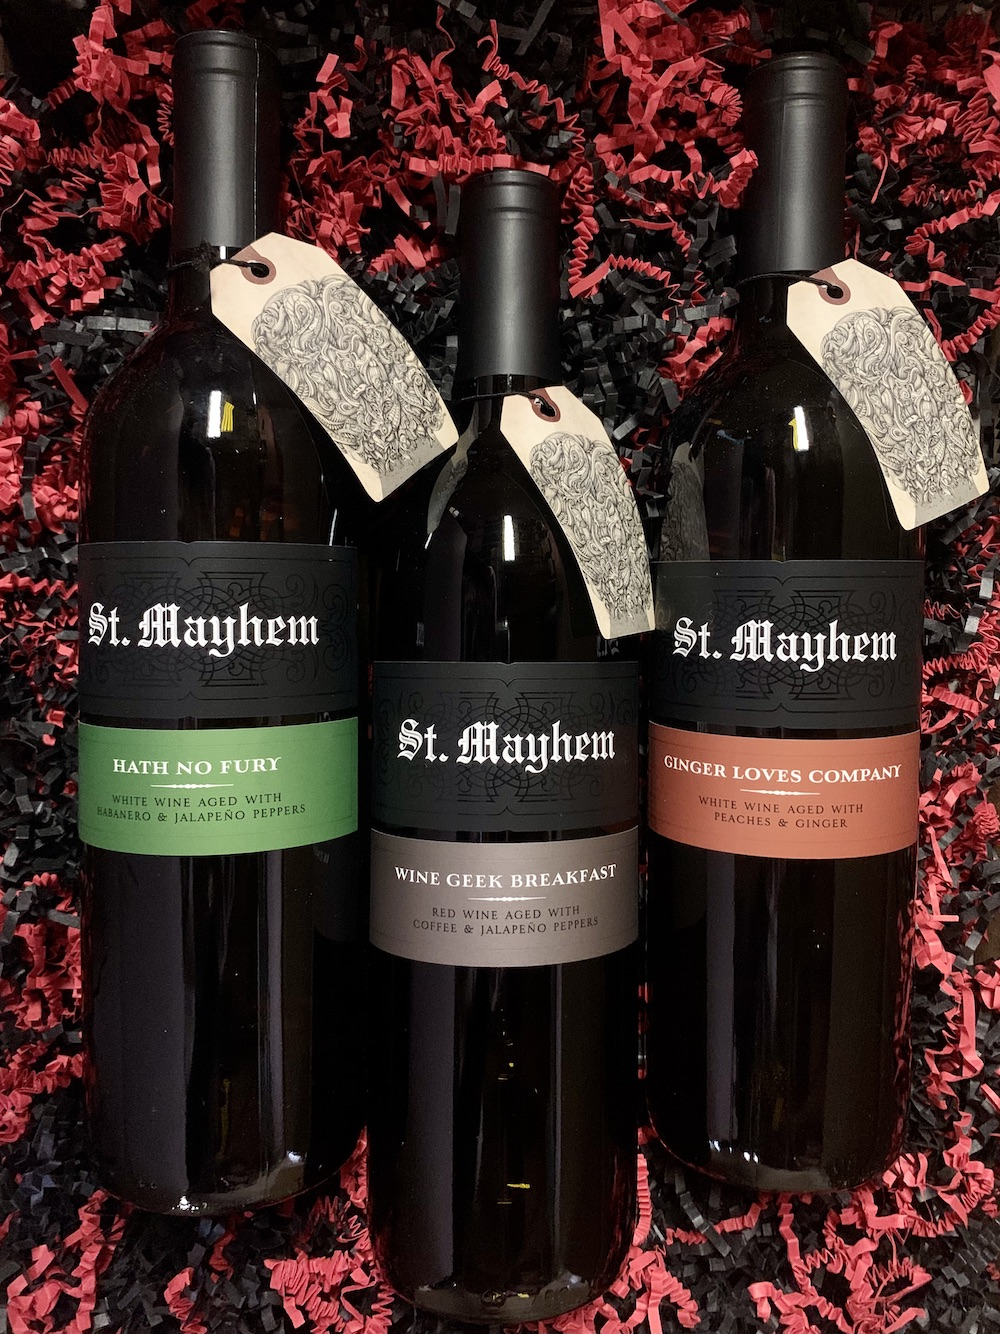 St. Mayhem 3 bottle Pack - Hath No Fury, Wine Geek Breakfast & Ginger Love Company 3x750ml - Art+Farm Wine